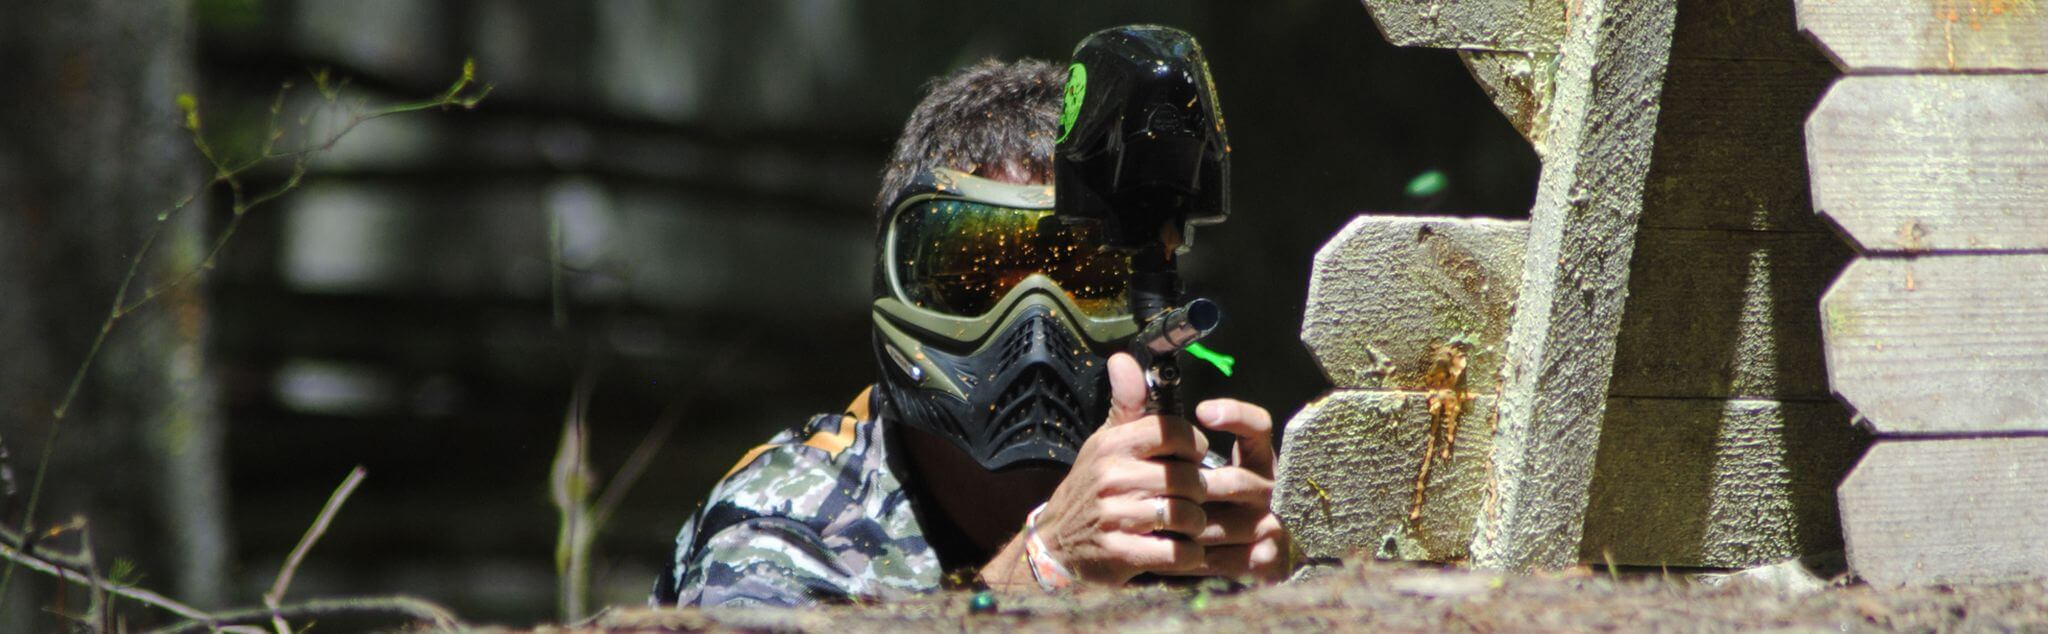 Paintball a Uga